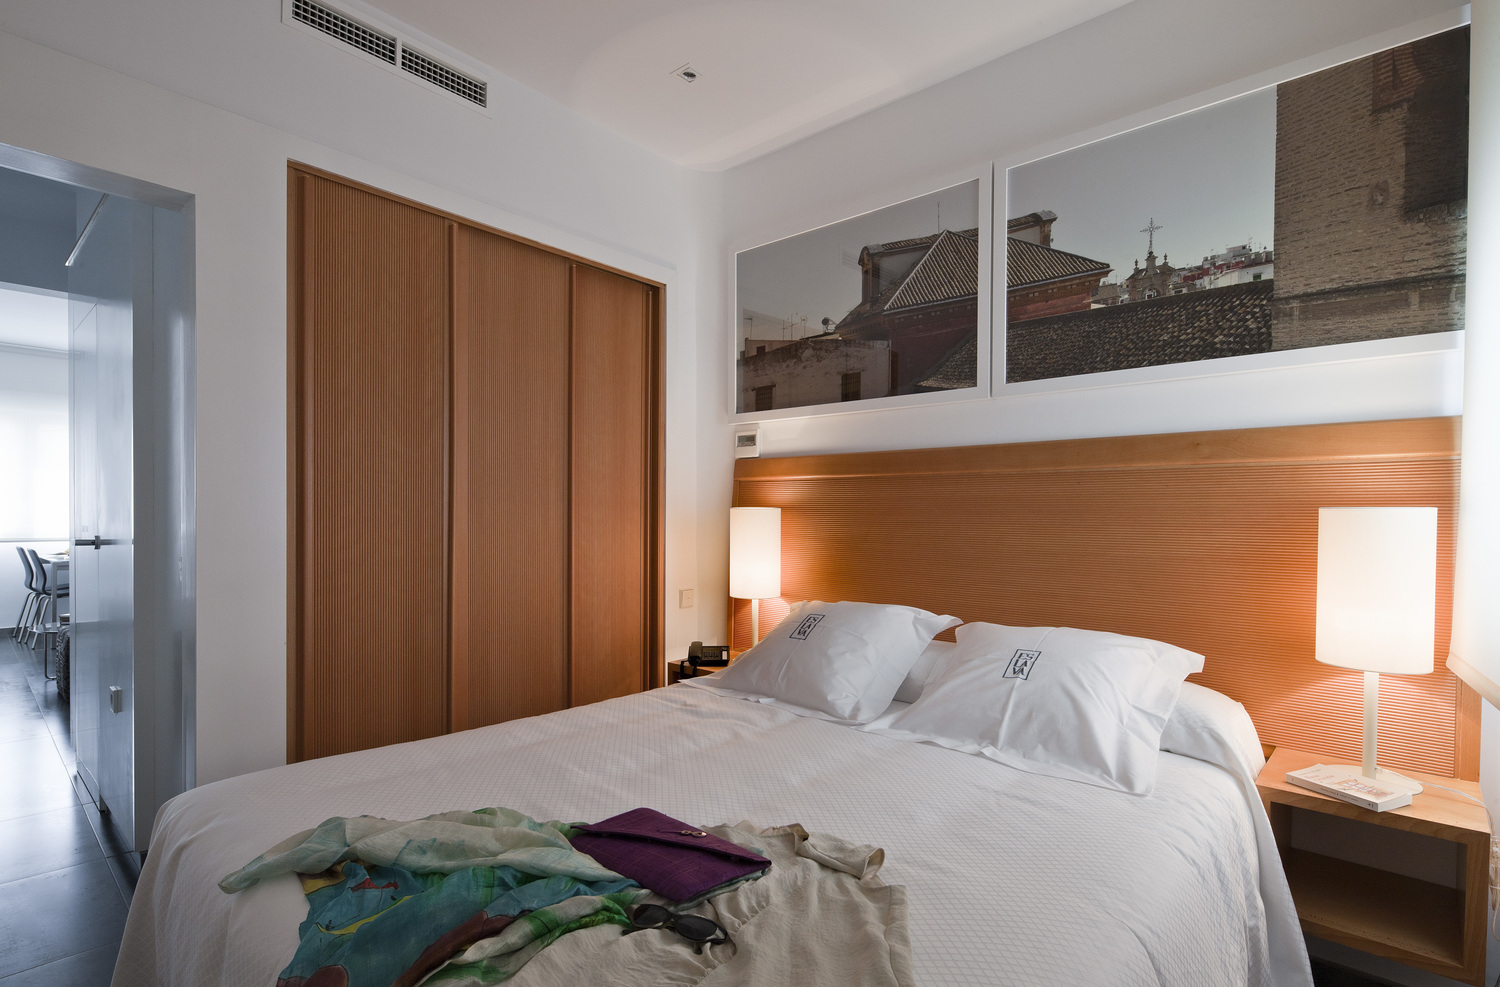 Bedroom in suite 3 is in the interior part of the apartment, away from the street noise.